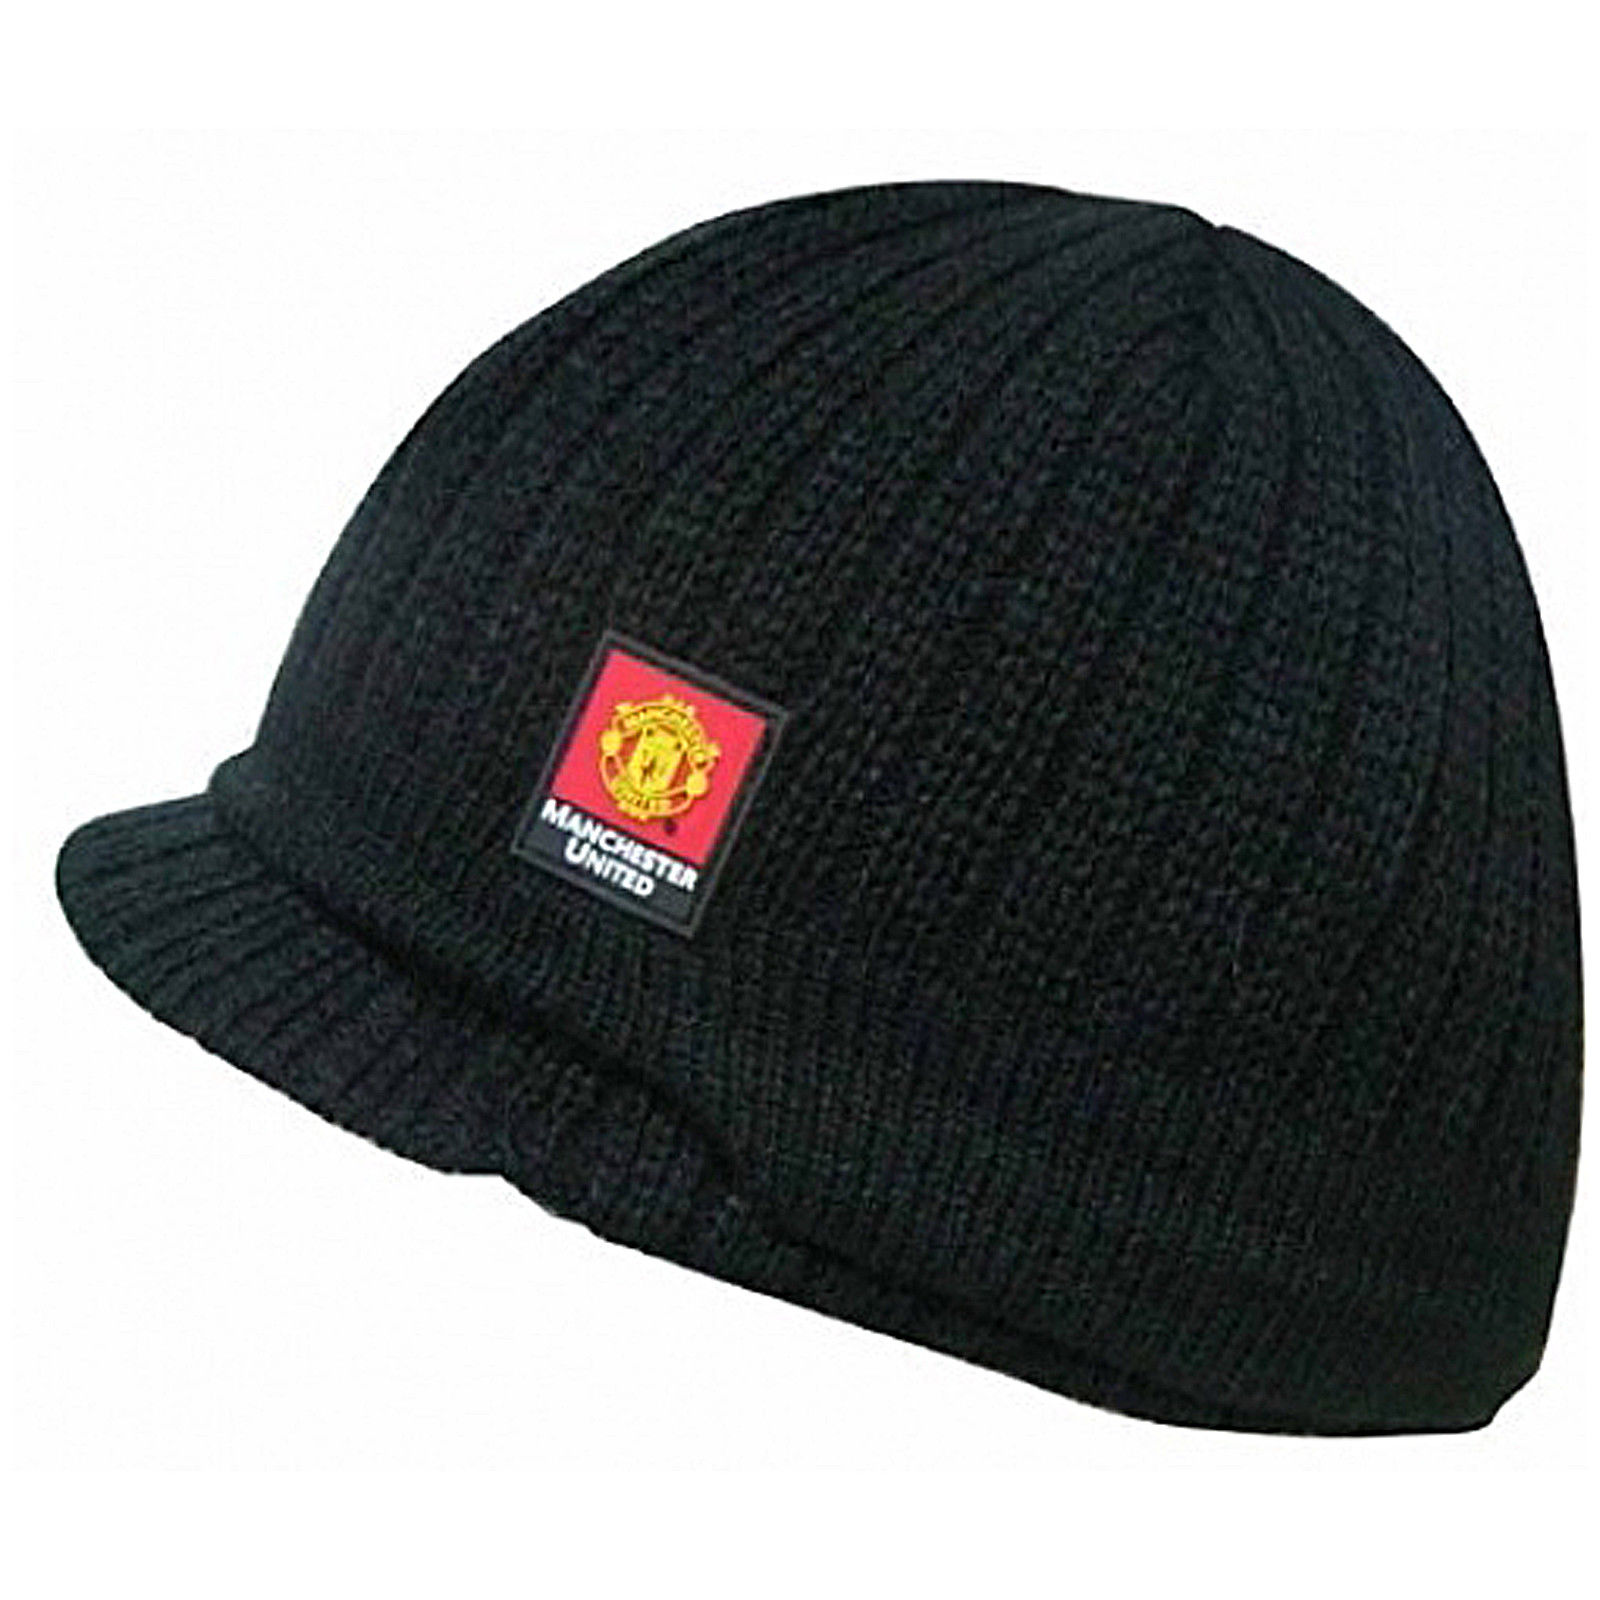 £9.95 GBP - Manchester United Fc Official Football Gift Knitted Peaked Beanie  Hat  ebay 581280ac3152